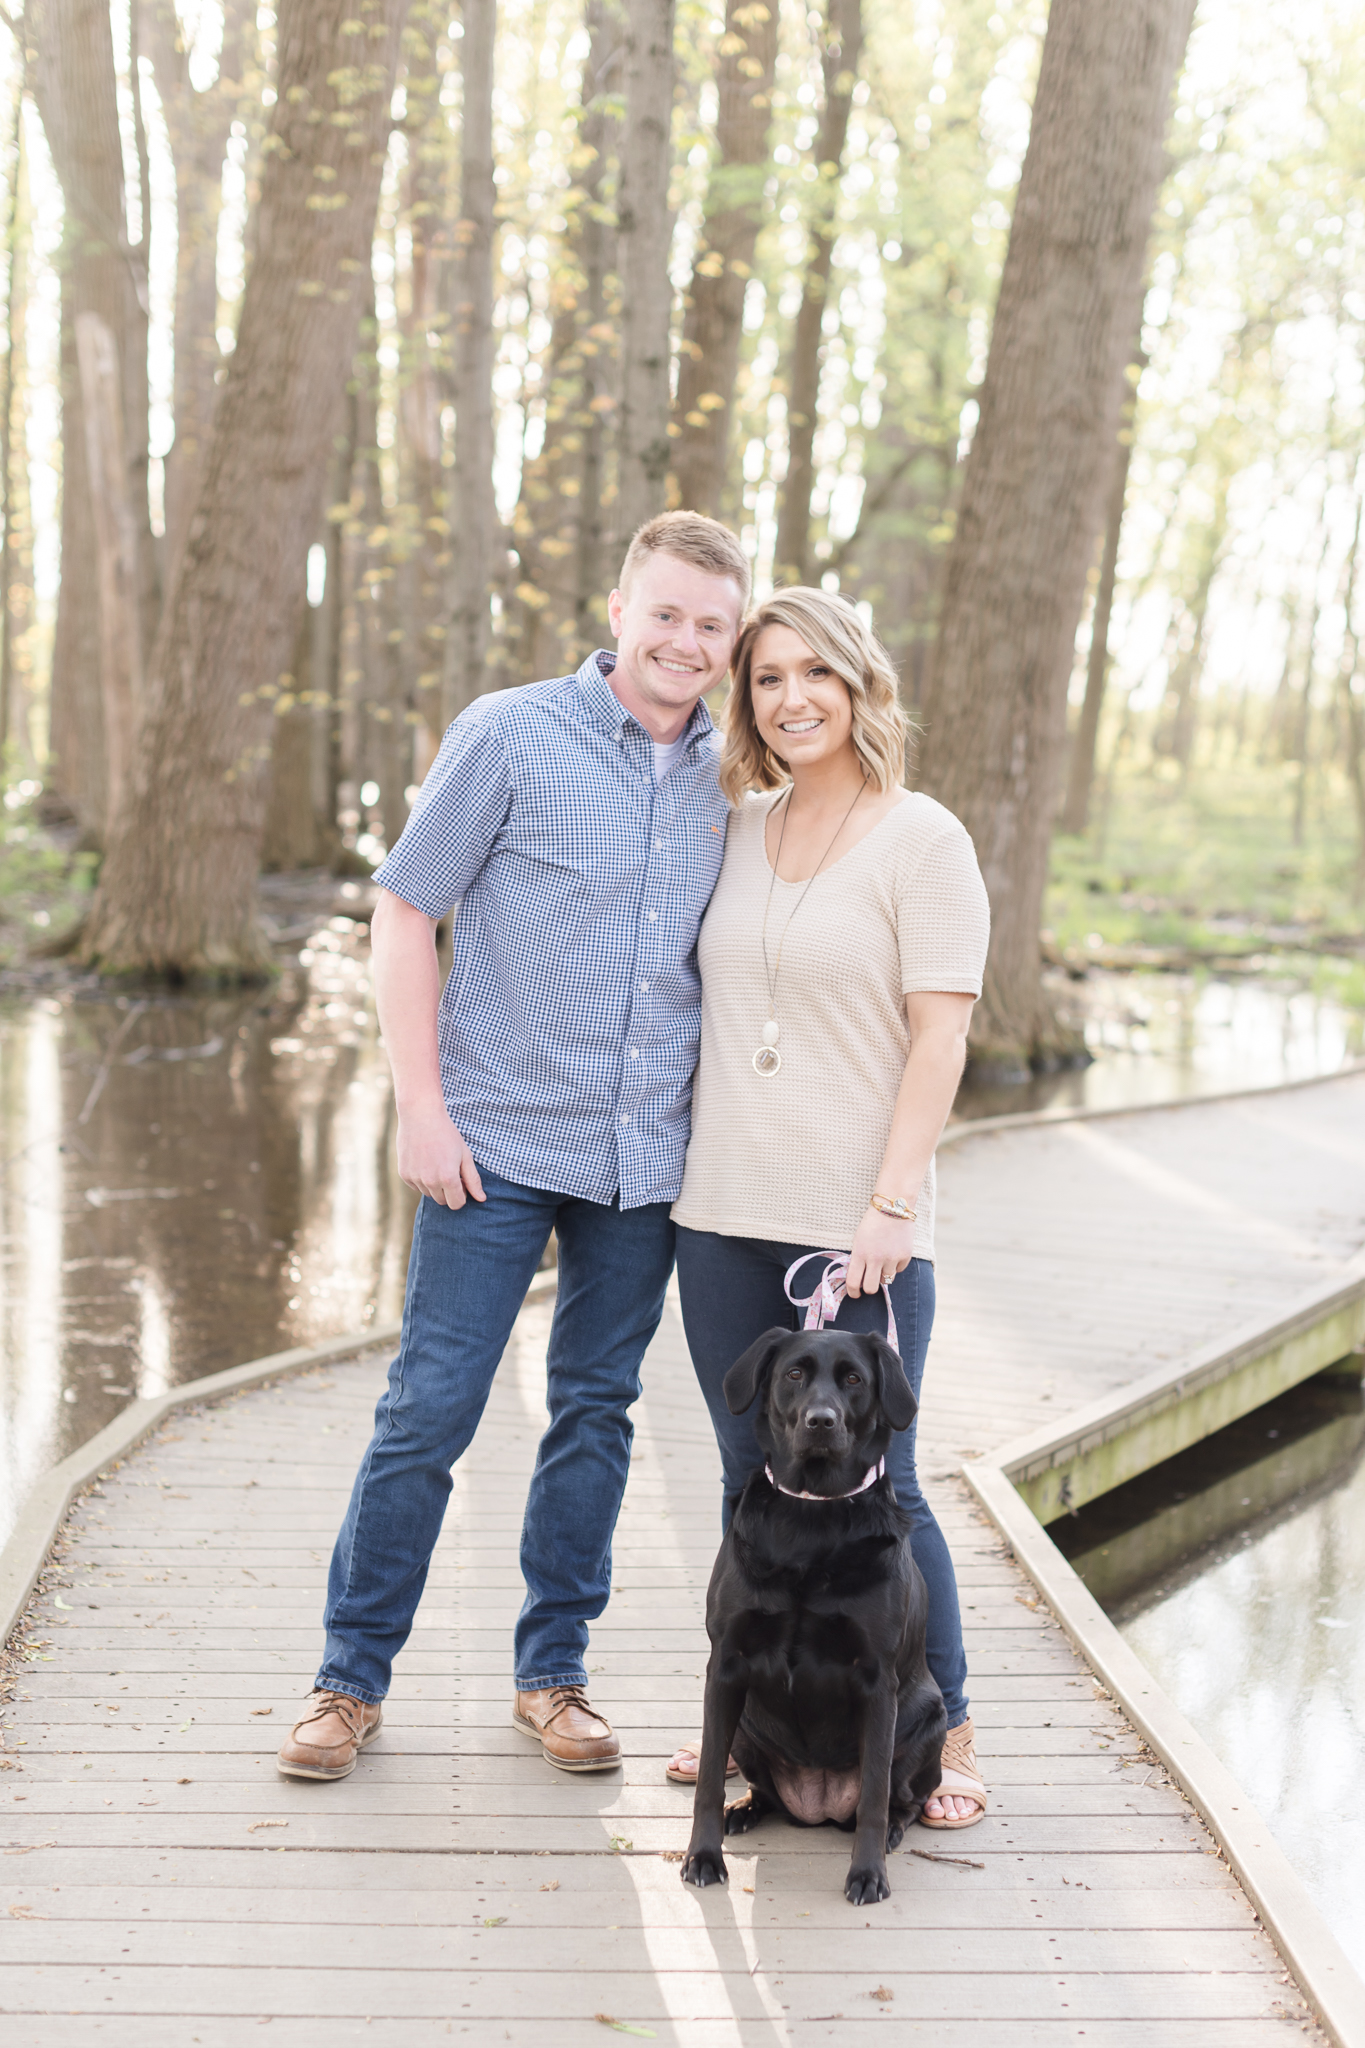 Richie Woods Nature Preserve and Mustard Seed Gardens Engagement Session Wedding Photos.jpg